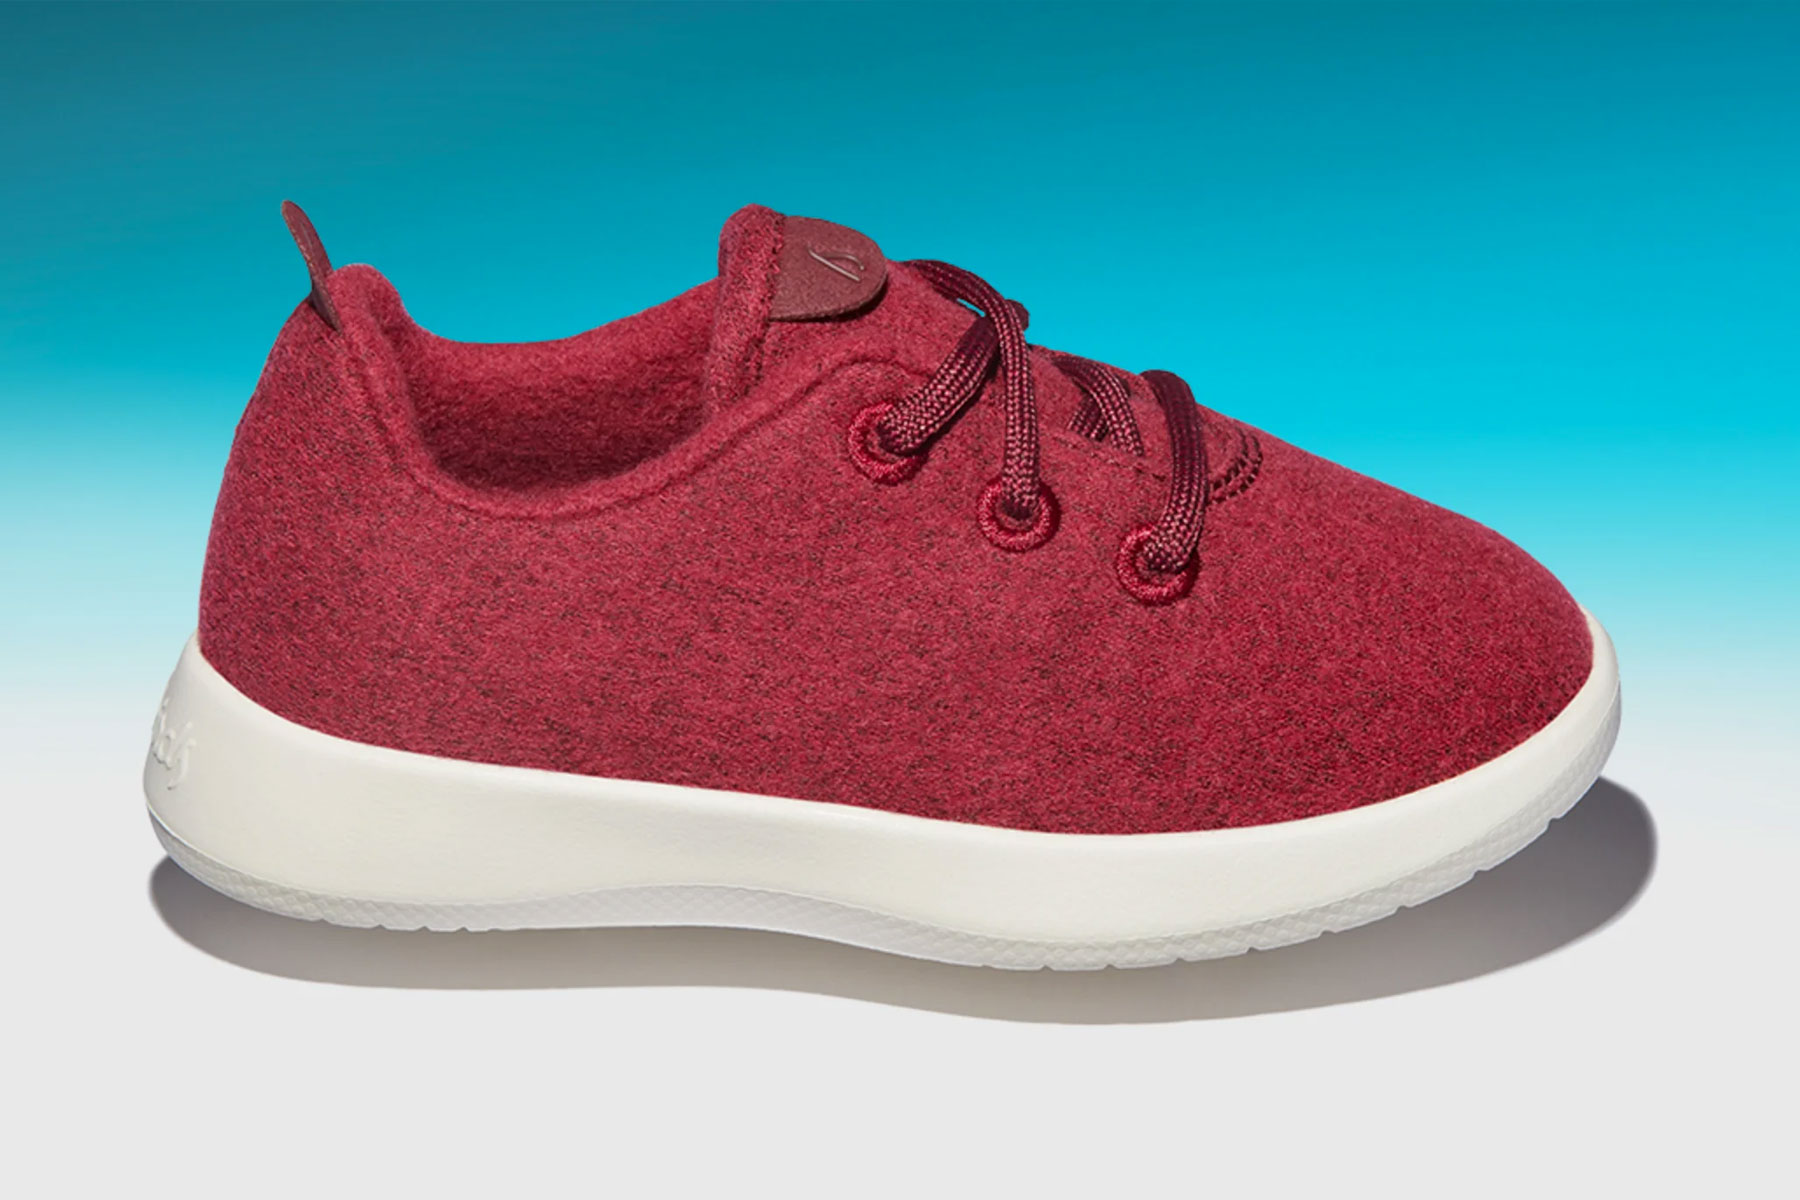 Red kids' sneakers